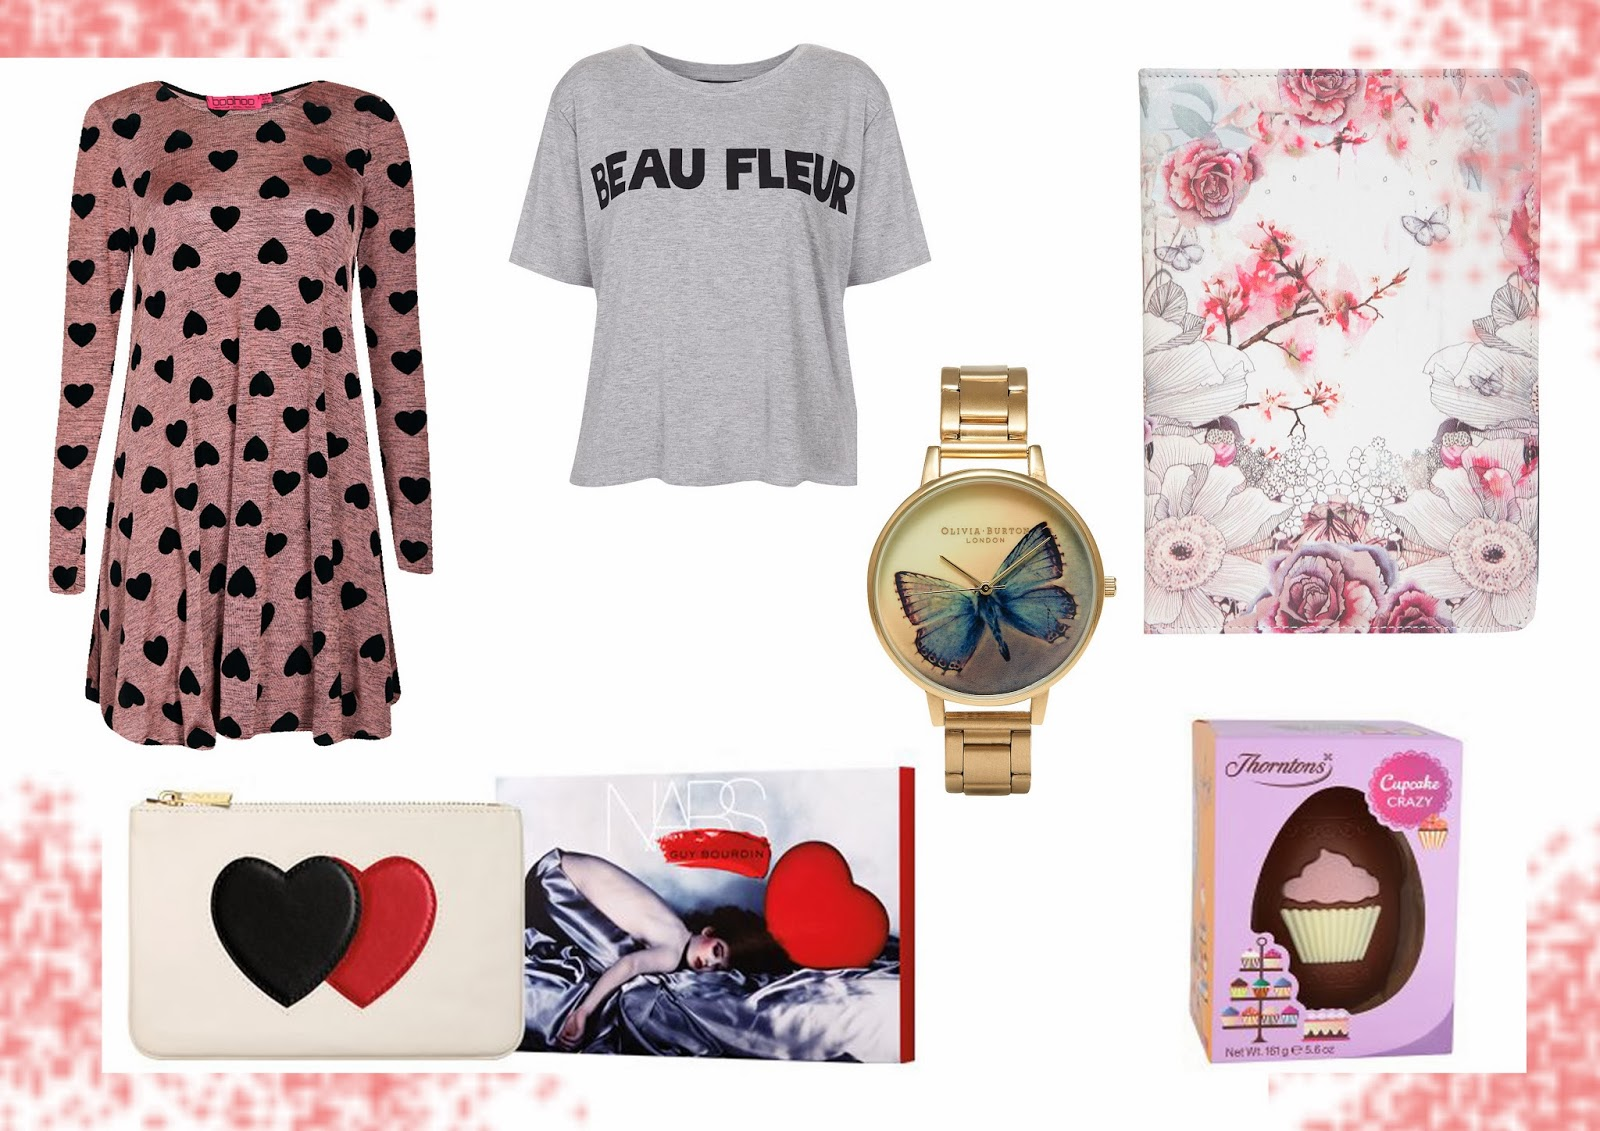 Valentines day gift ideas for her abigail kemples for Valentines day gift ideas her